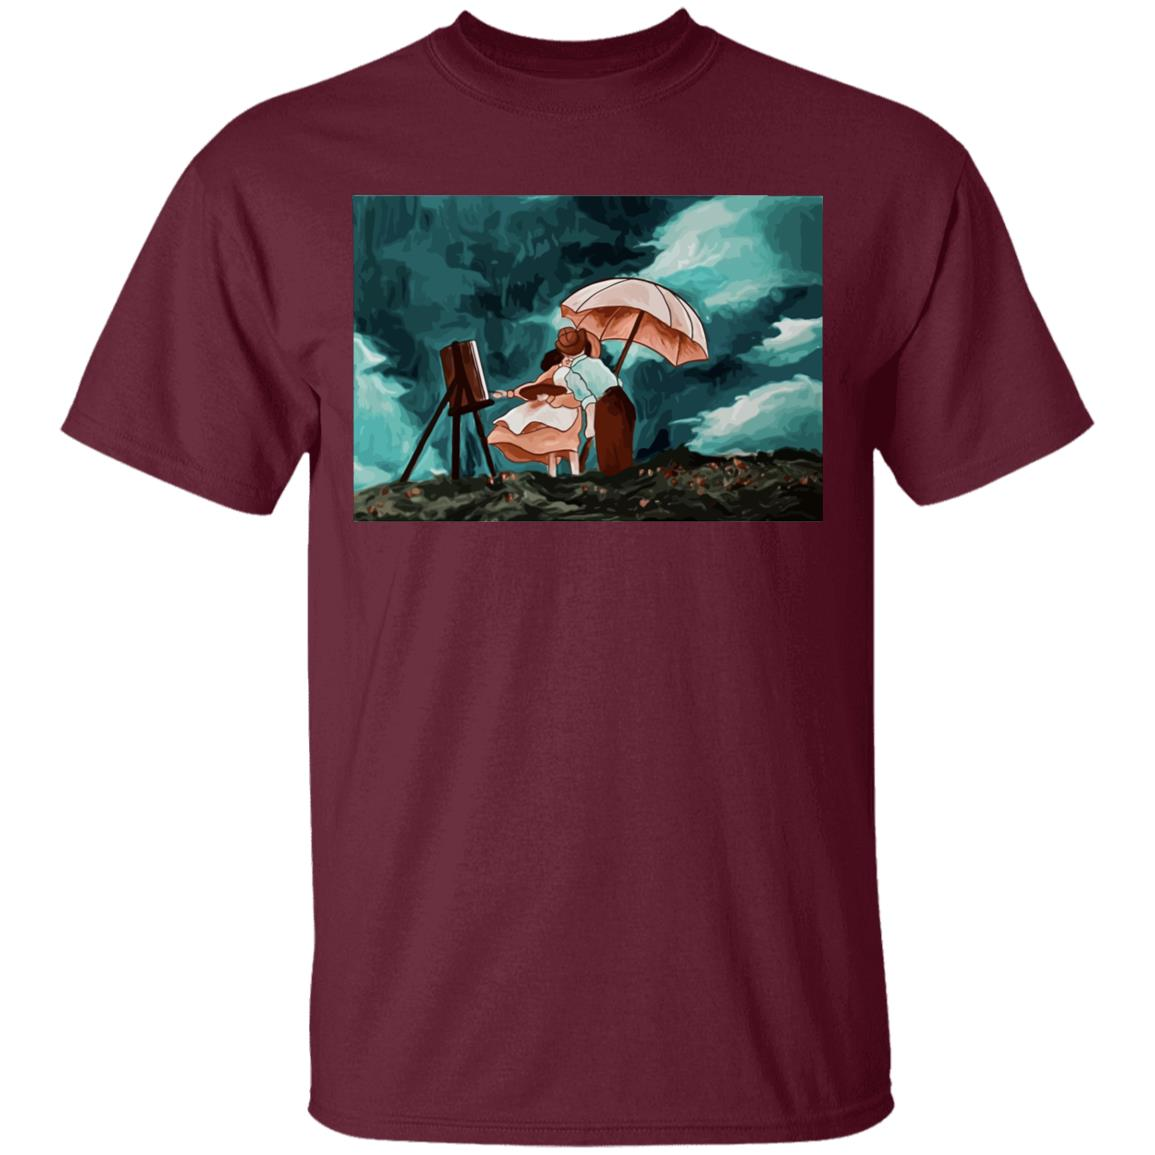 When the wind rises Classic T Shirt